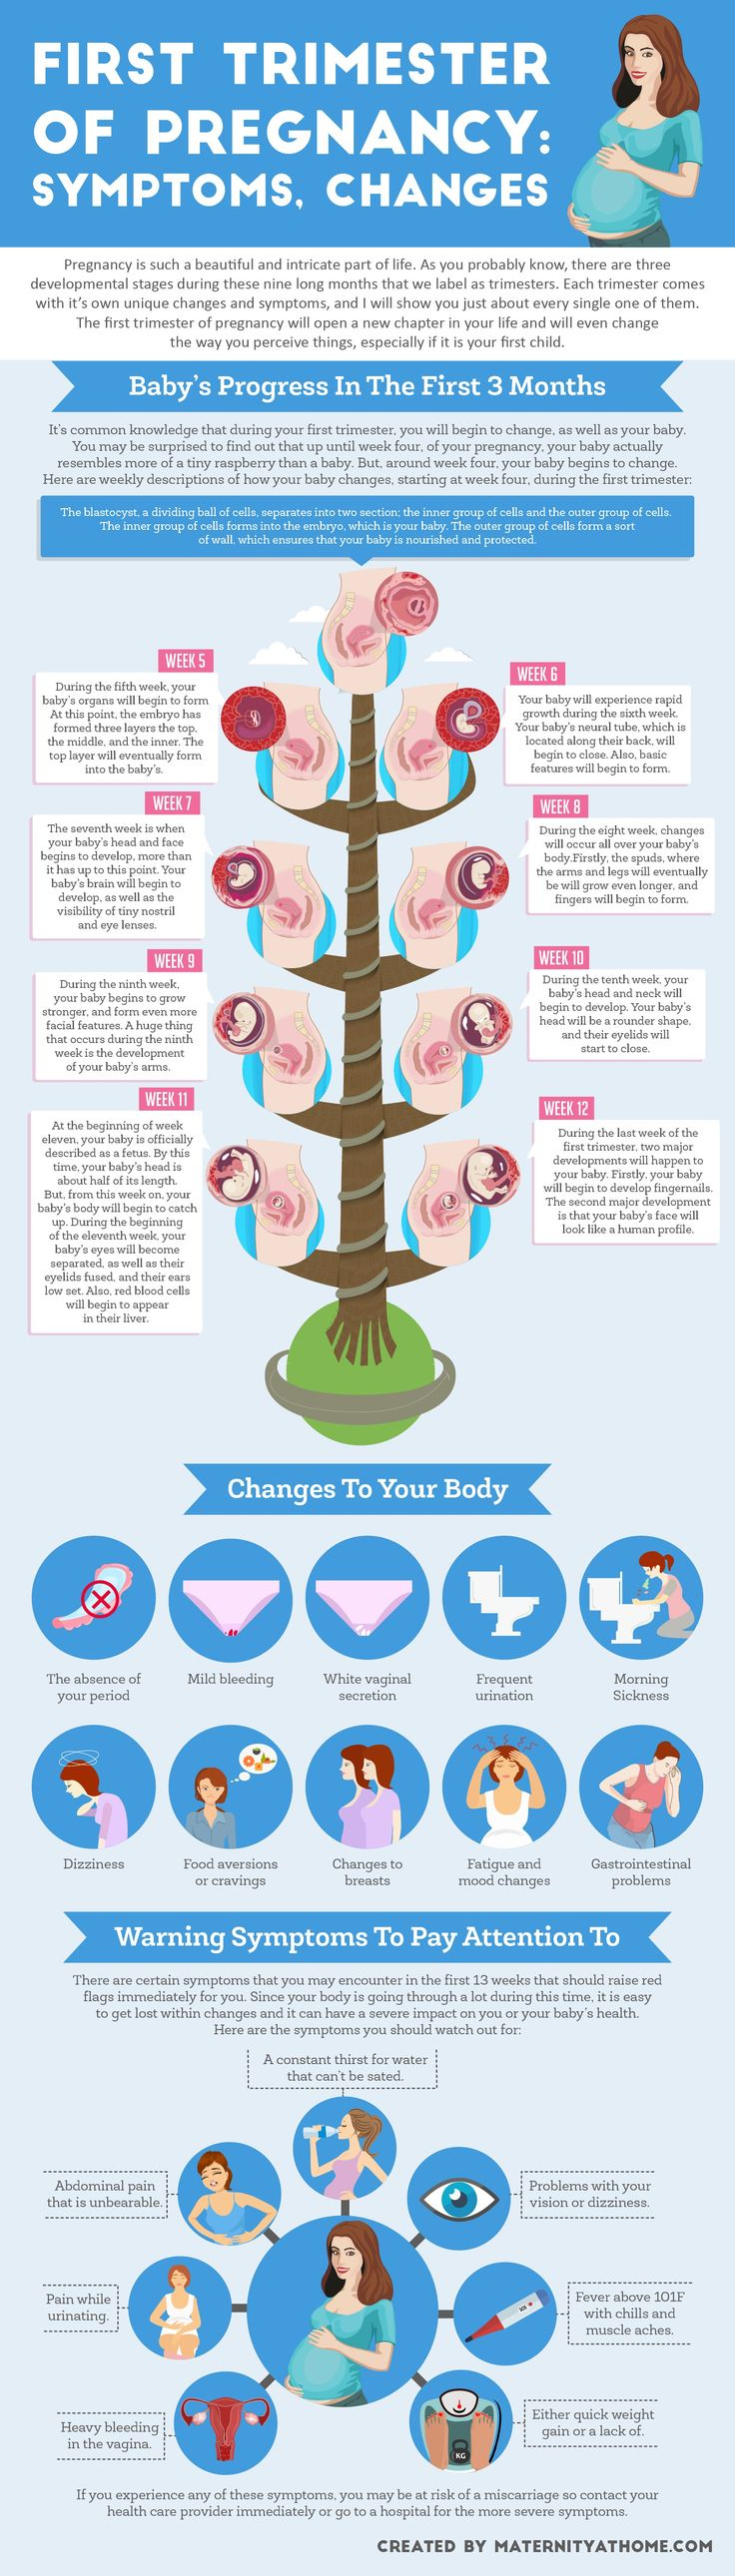 Your body is going to change a lot during the first trimester of pregnancy! | Southern Illinois OB/GYN | 618-529-4711 or (618) 998-8808 www.siobg.com |